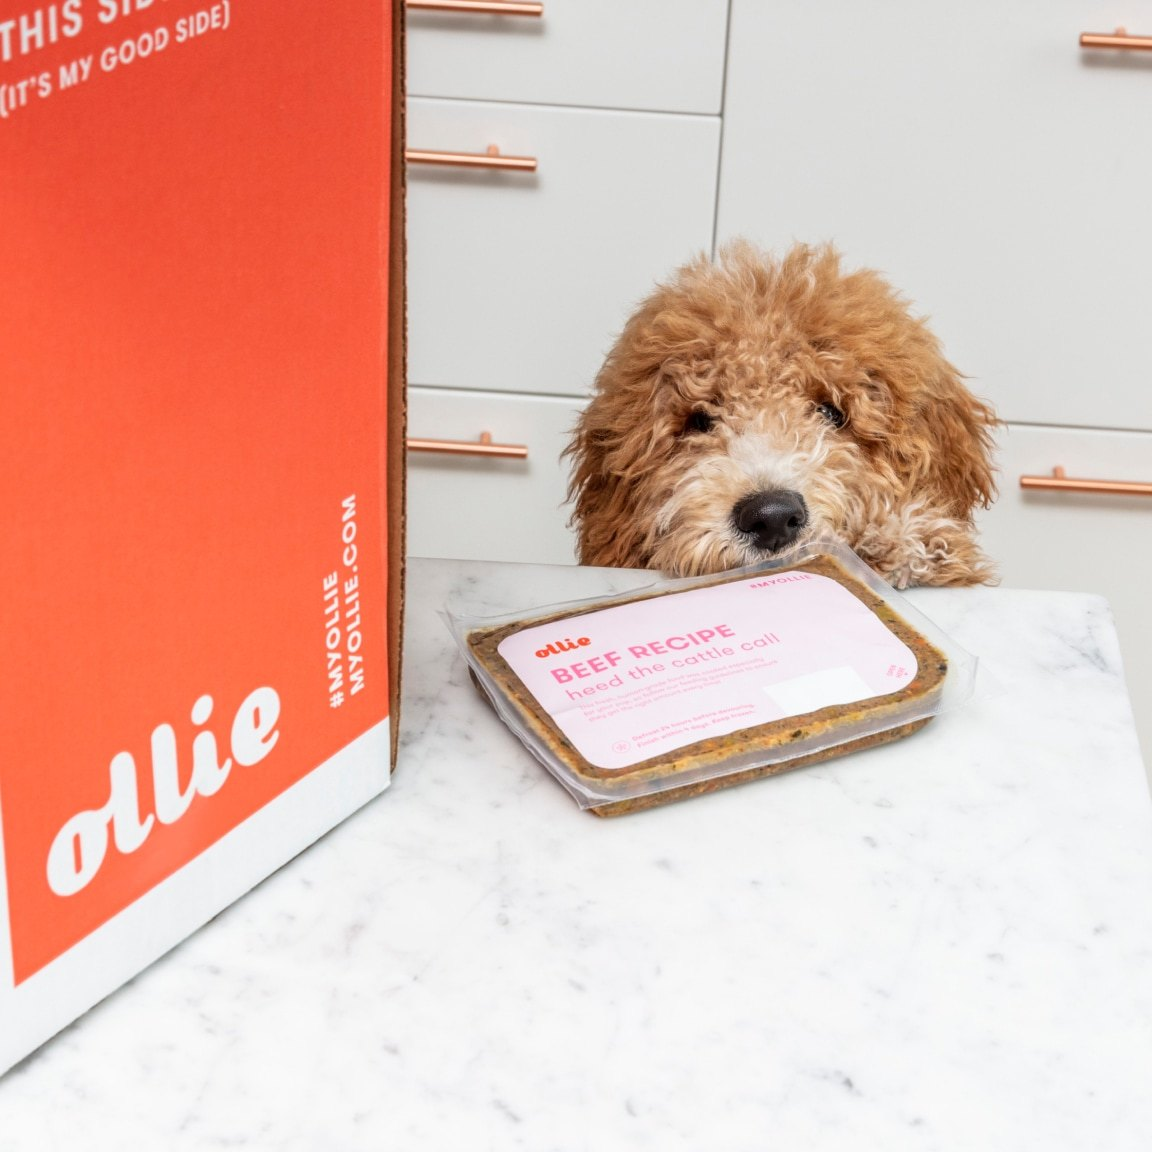 Golden Doodle peeking on the marble counter looking at a bag of my ollie dog food with an orange my ollie box next to it